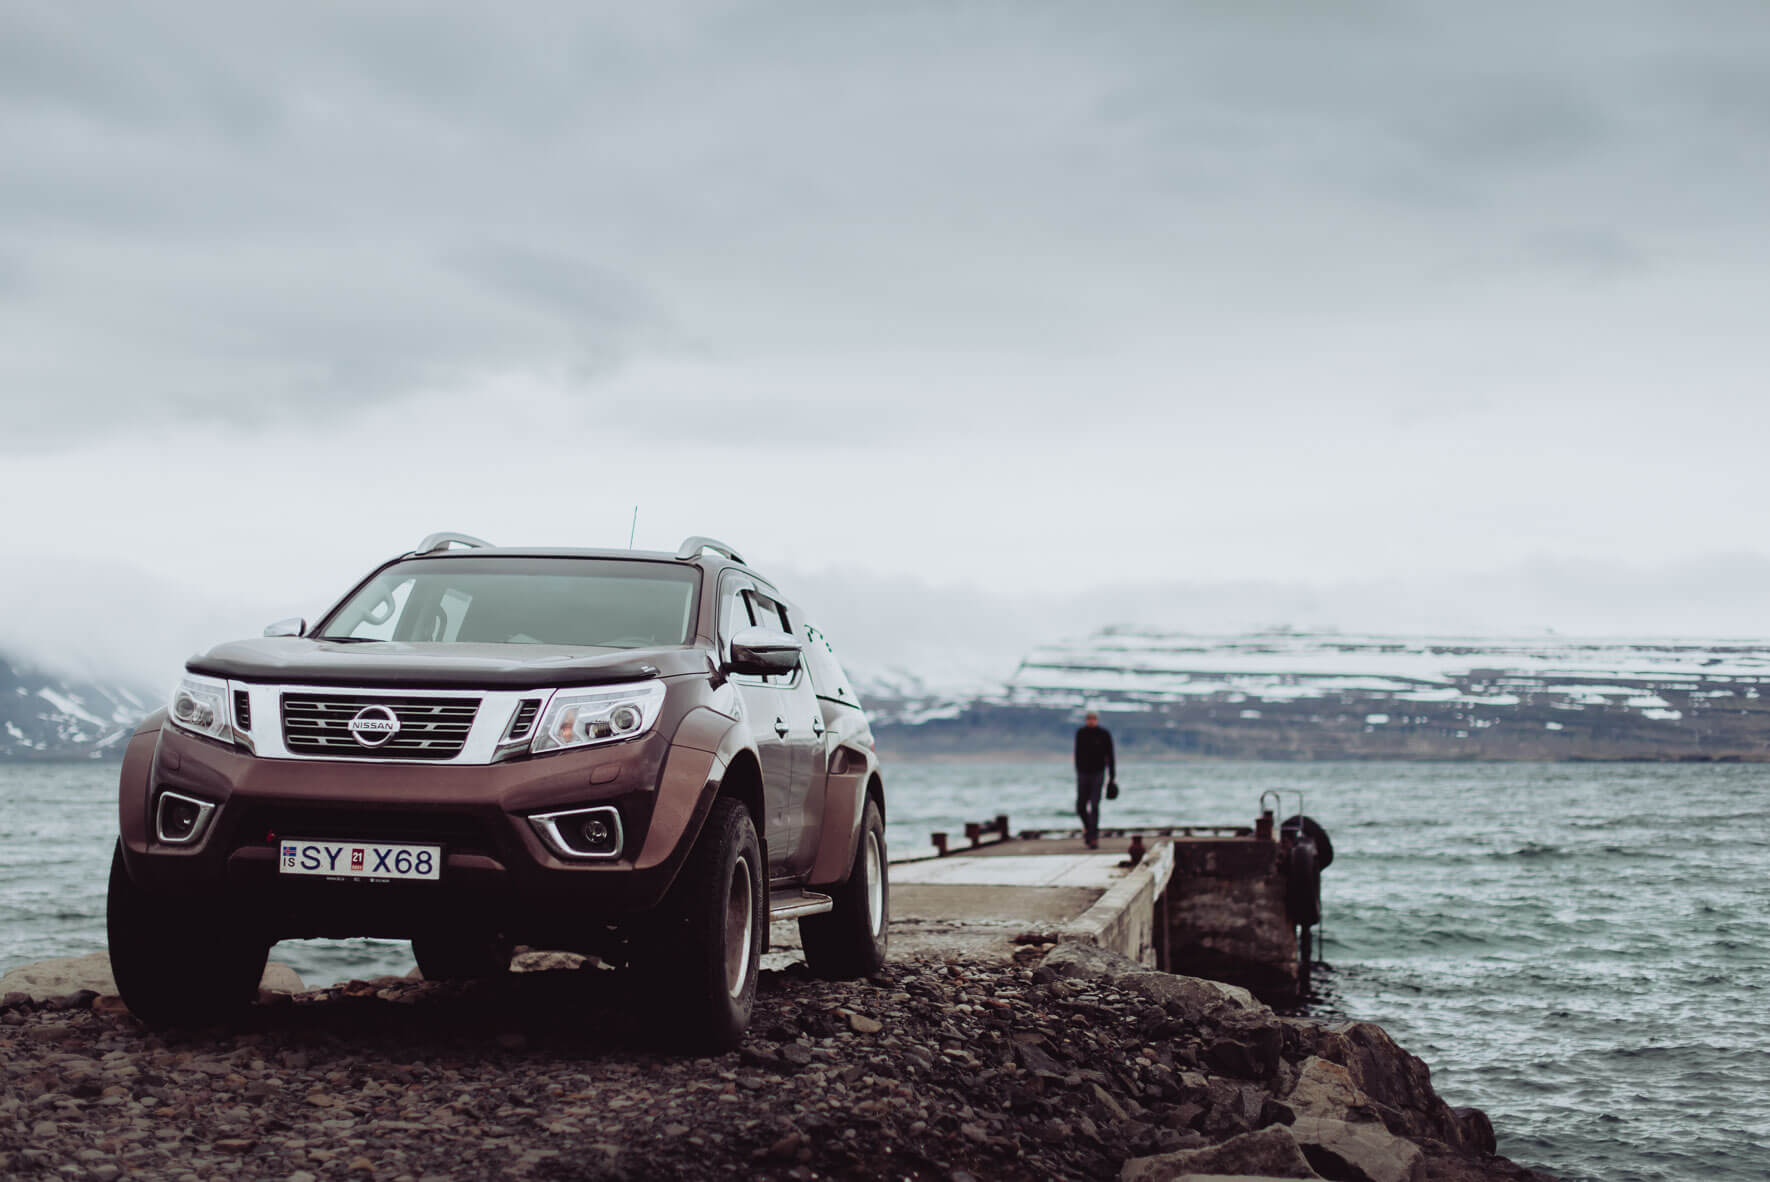 Nissan Navara AT35 modified by Arctic Trucks in the Westfjords of Iceland